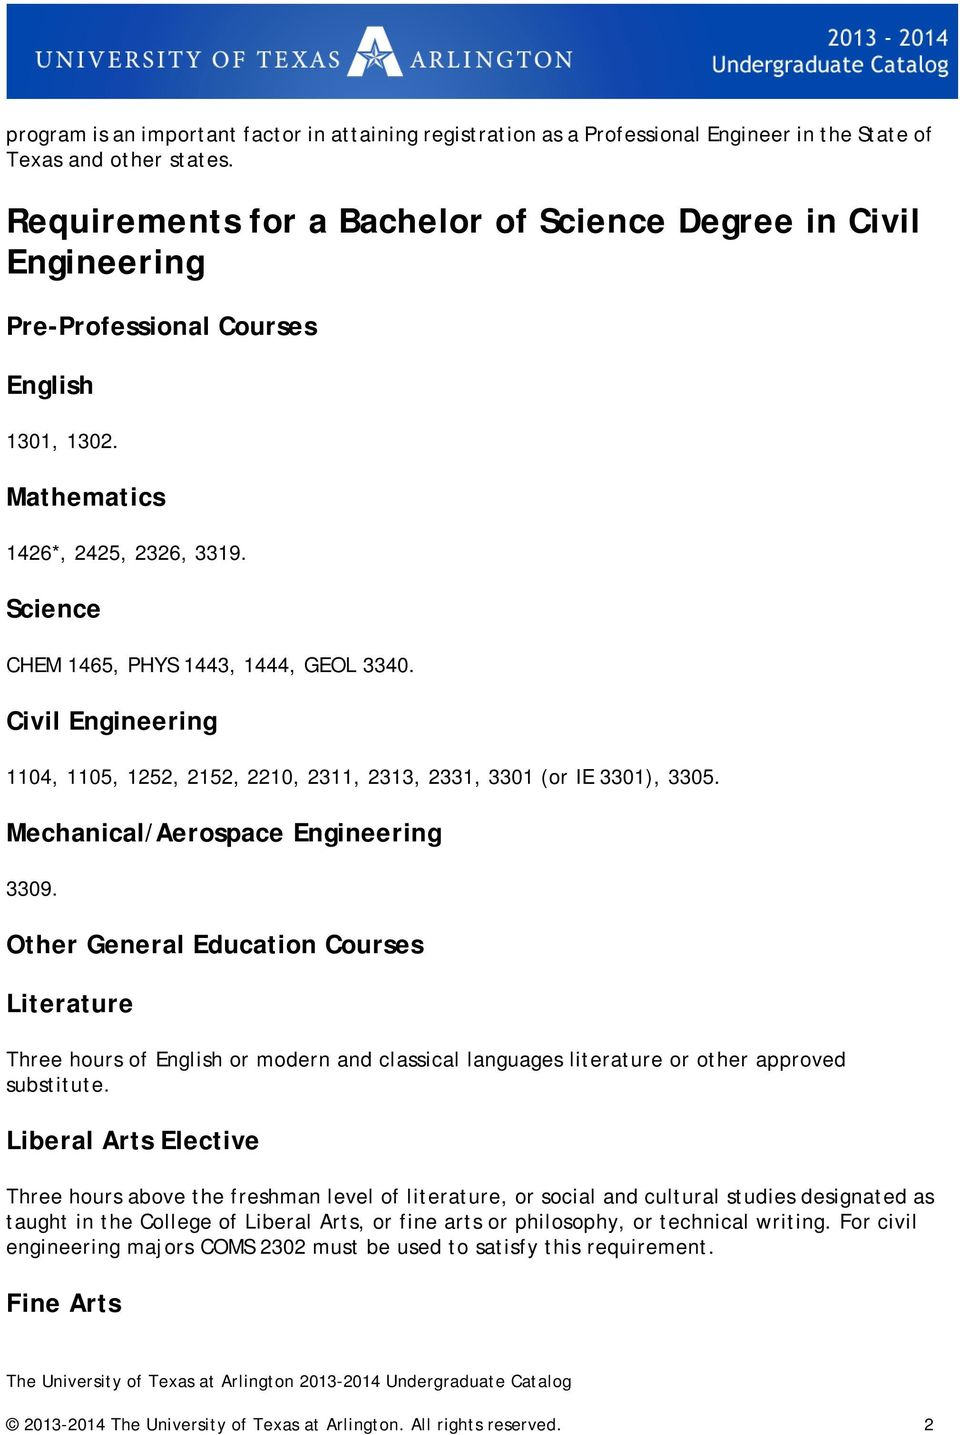 Civil Engineering 1104, 1105, 1252, 2152, 2210, 2311, 2313, 2331, 3301 (or IE 3301), 3305. Mechanical/Aerospace Engineering 3309.